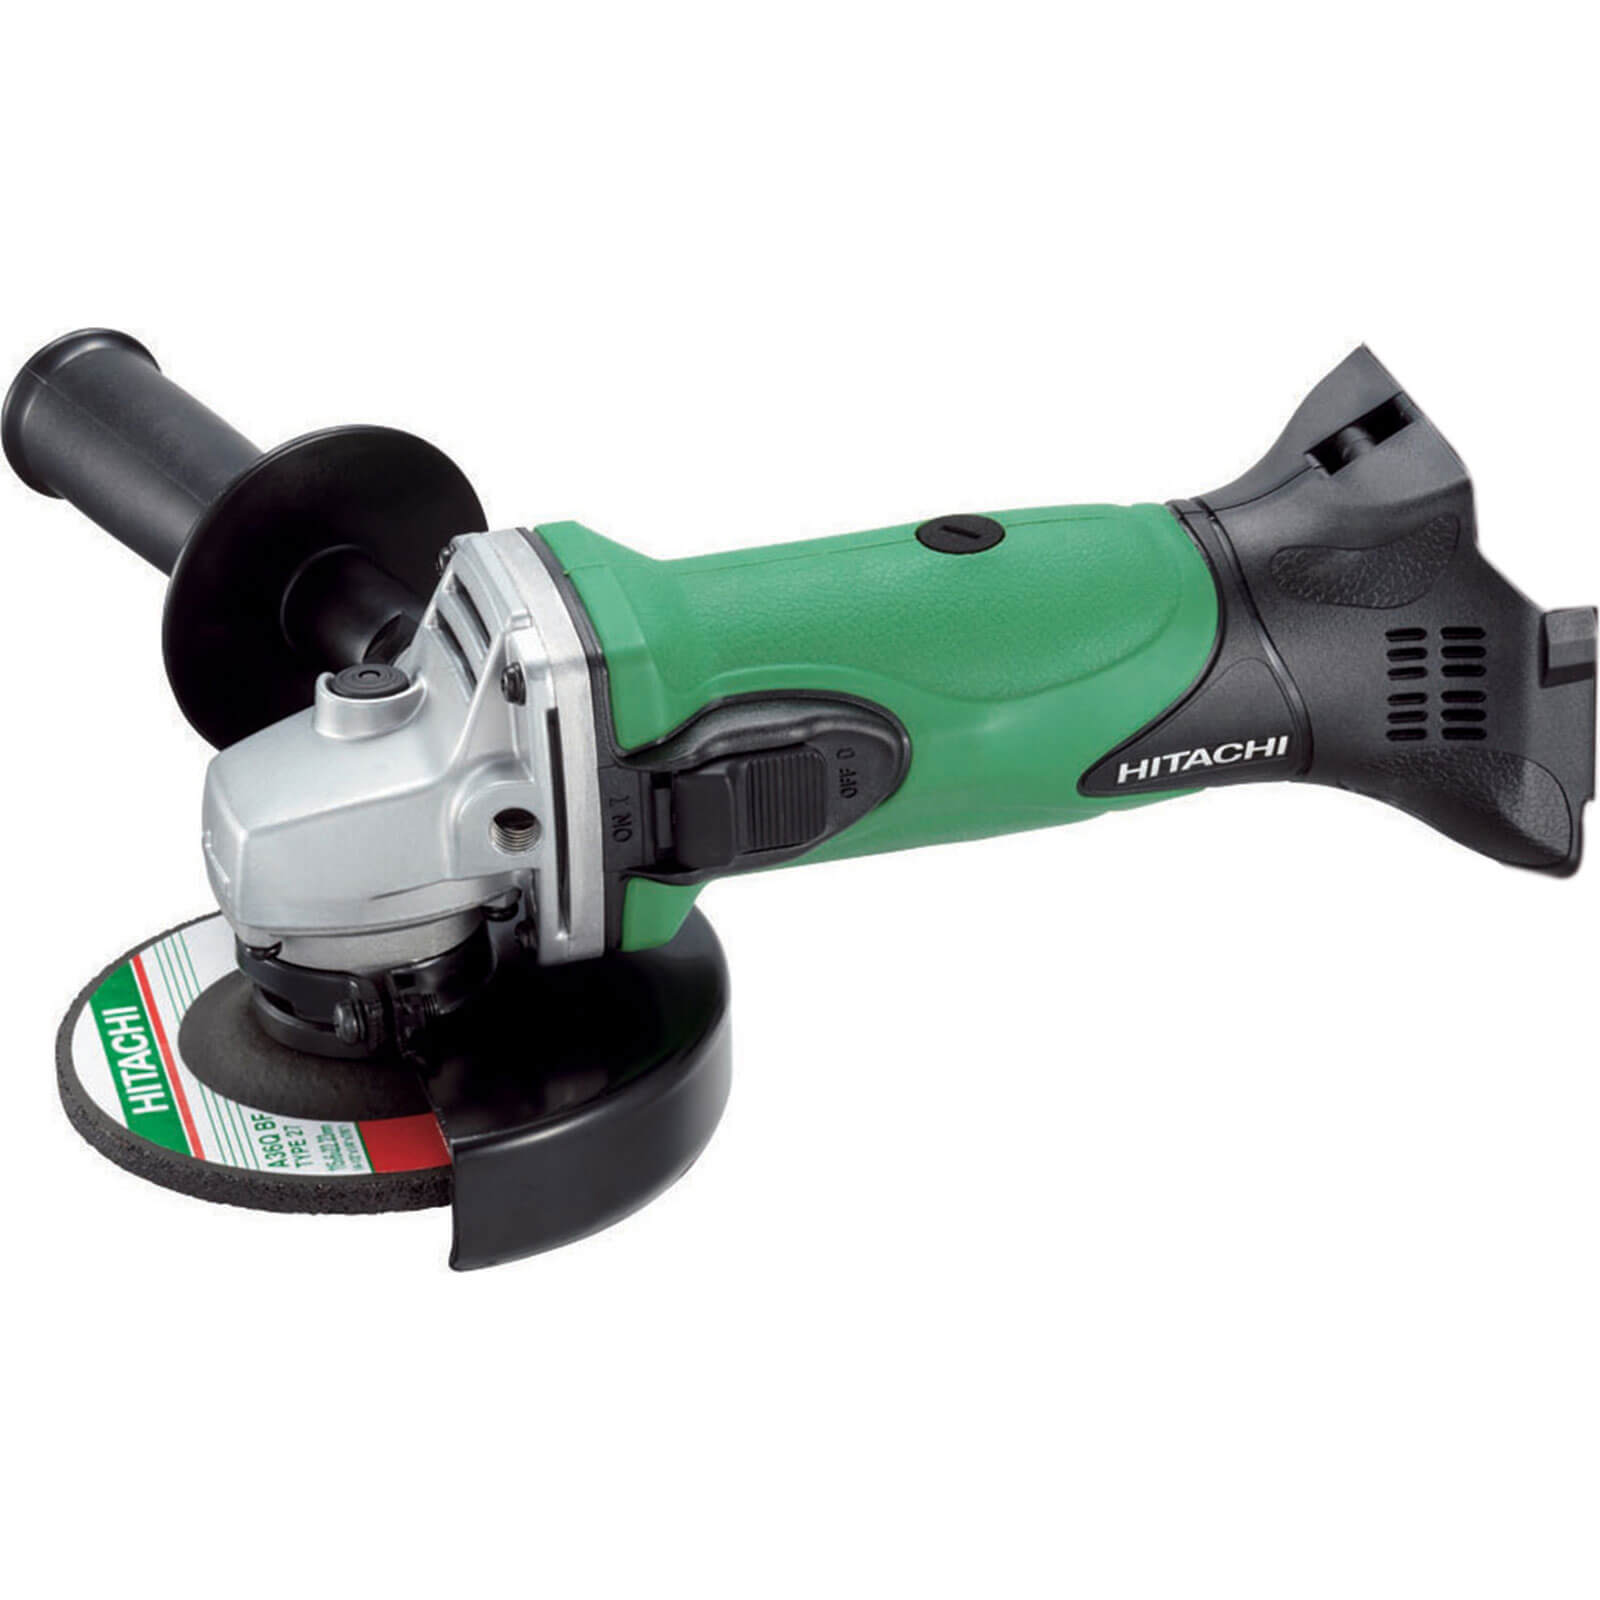 """Hitachi G18DSL4 18v Cordless Angle Grinder 115mm / 4.5"""" Disc without Battery or Charger"""